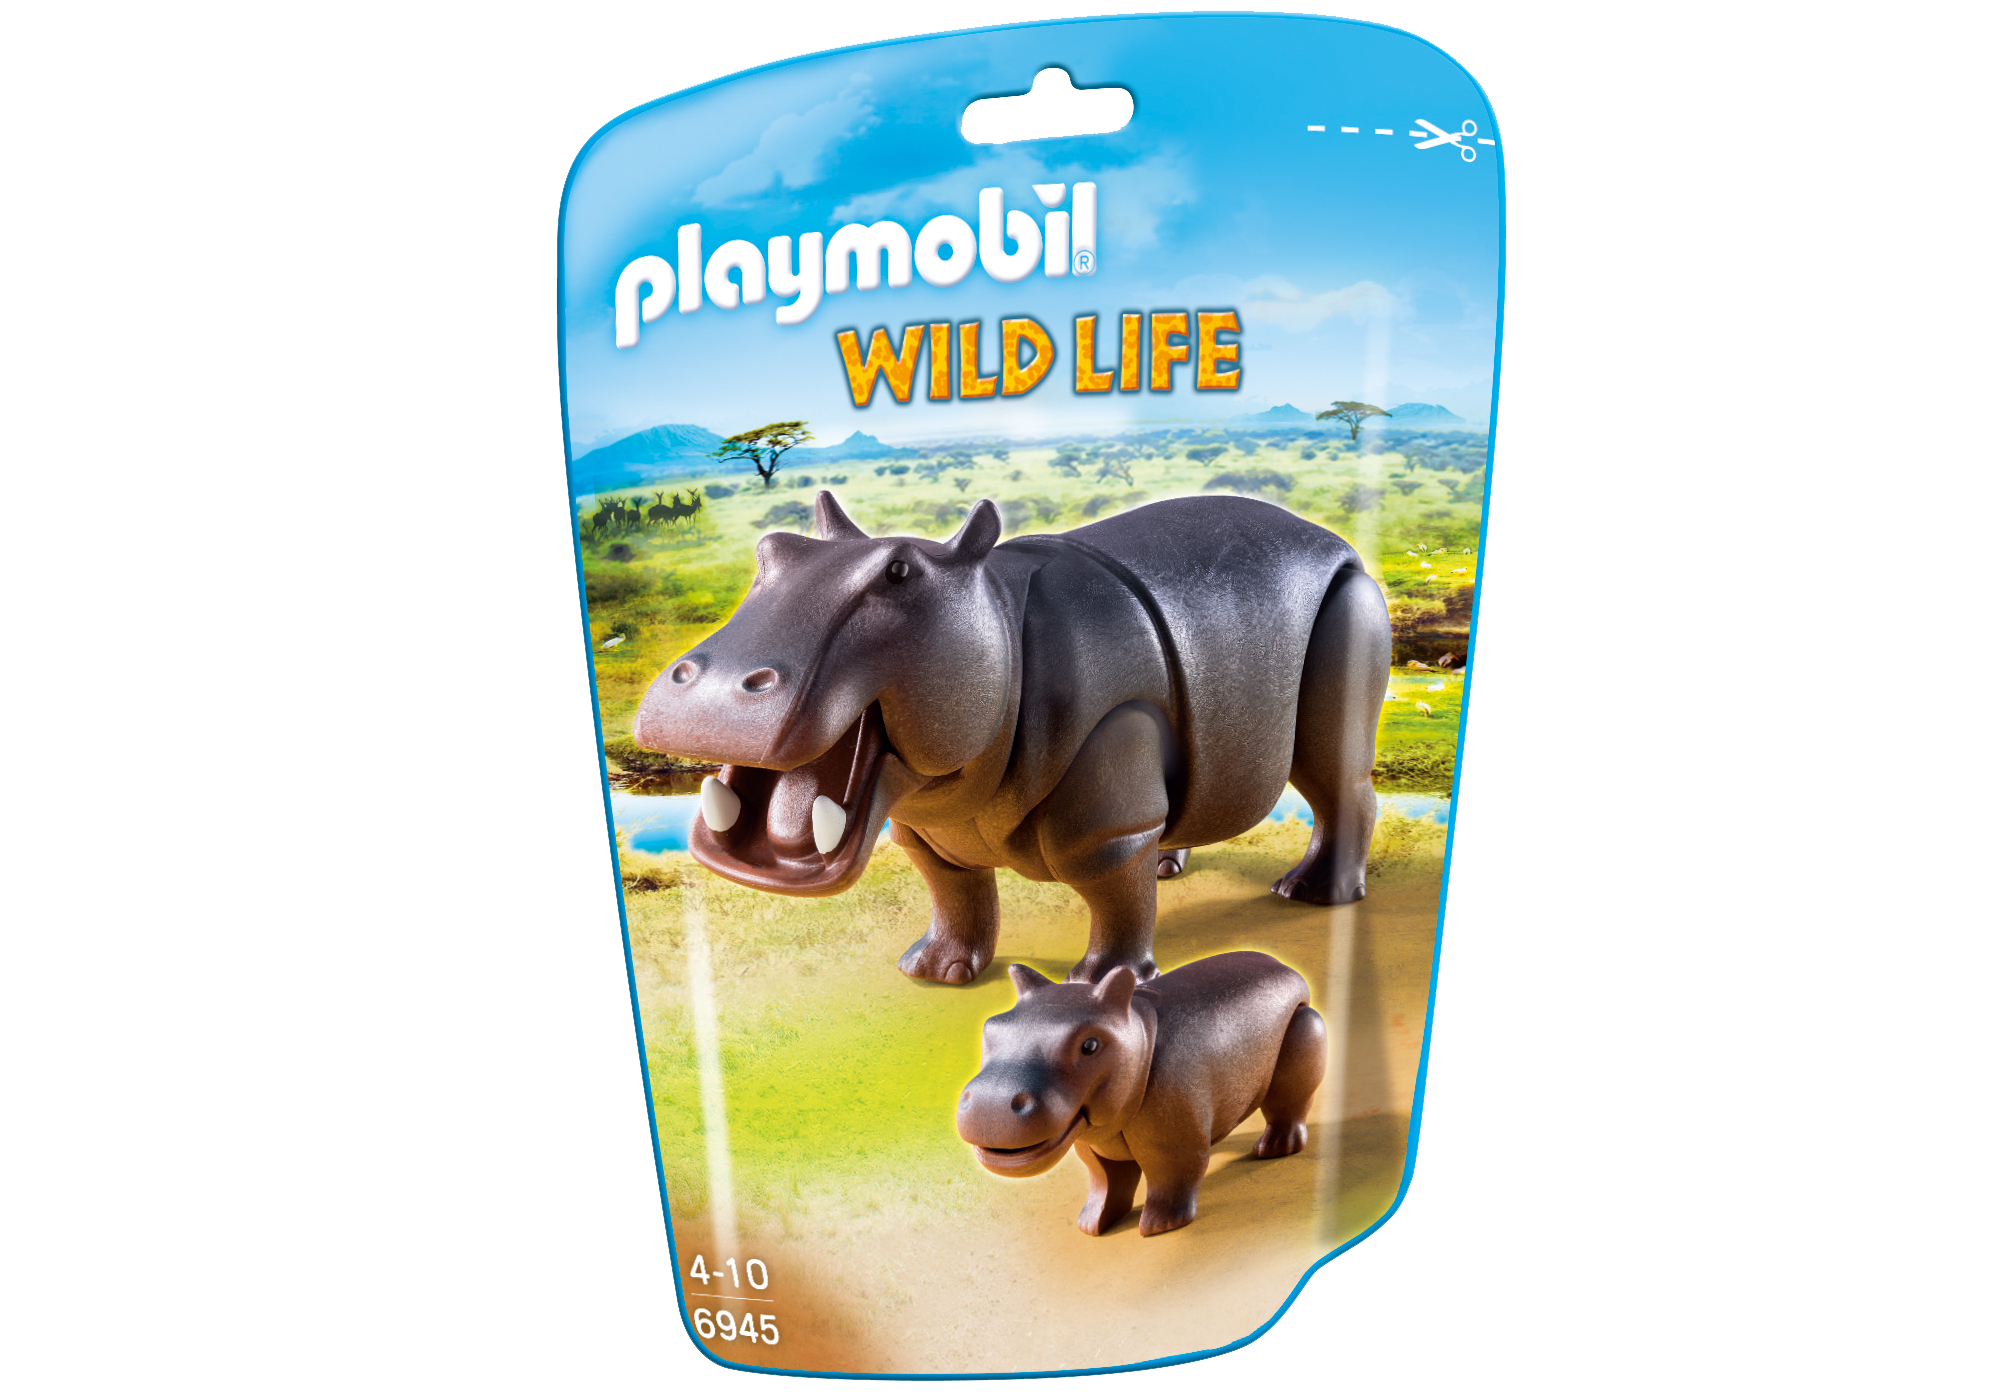 http://media.playmobil.com/i/playmobil/6945_product_box_front